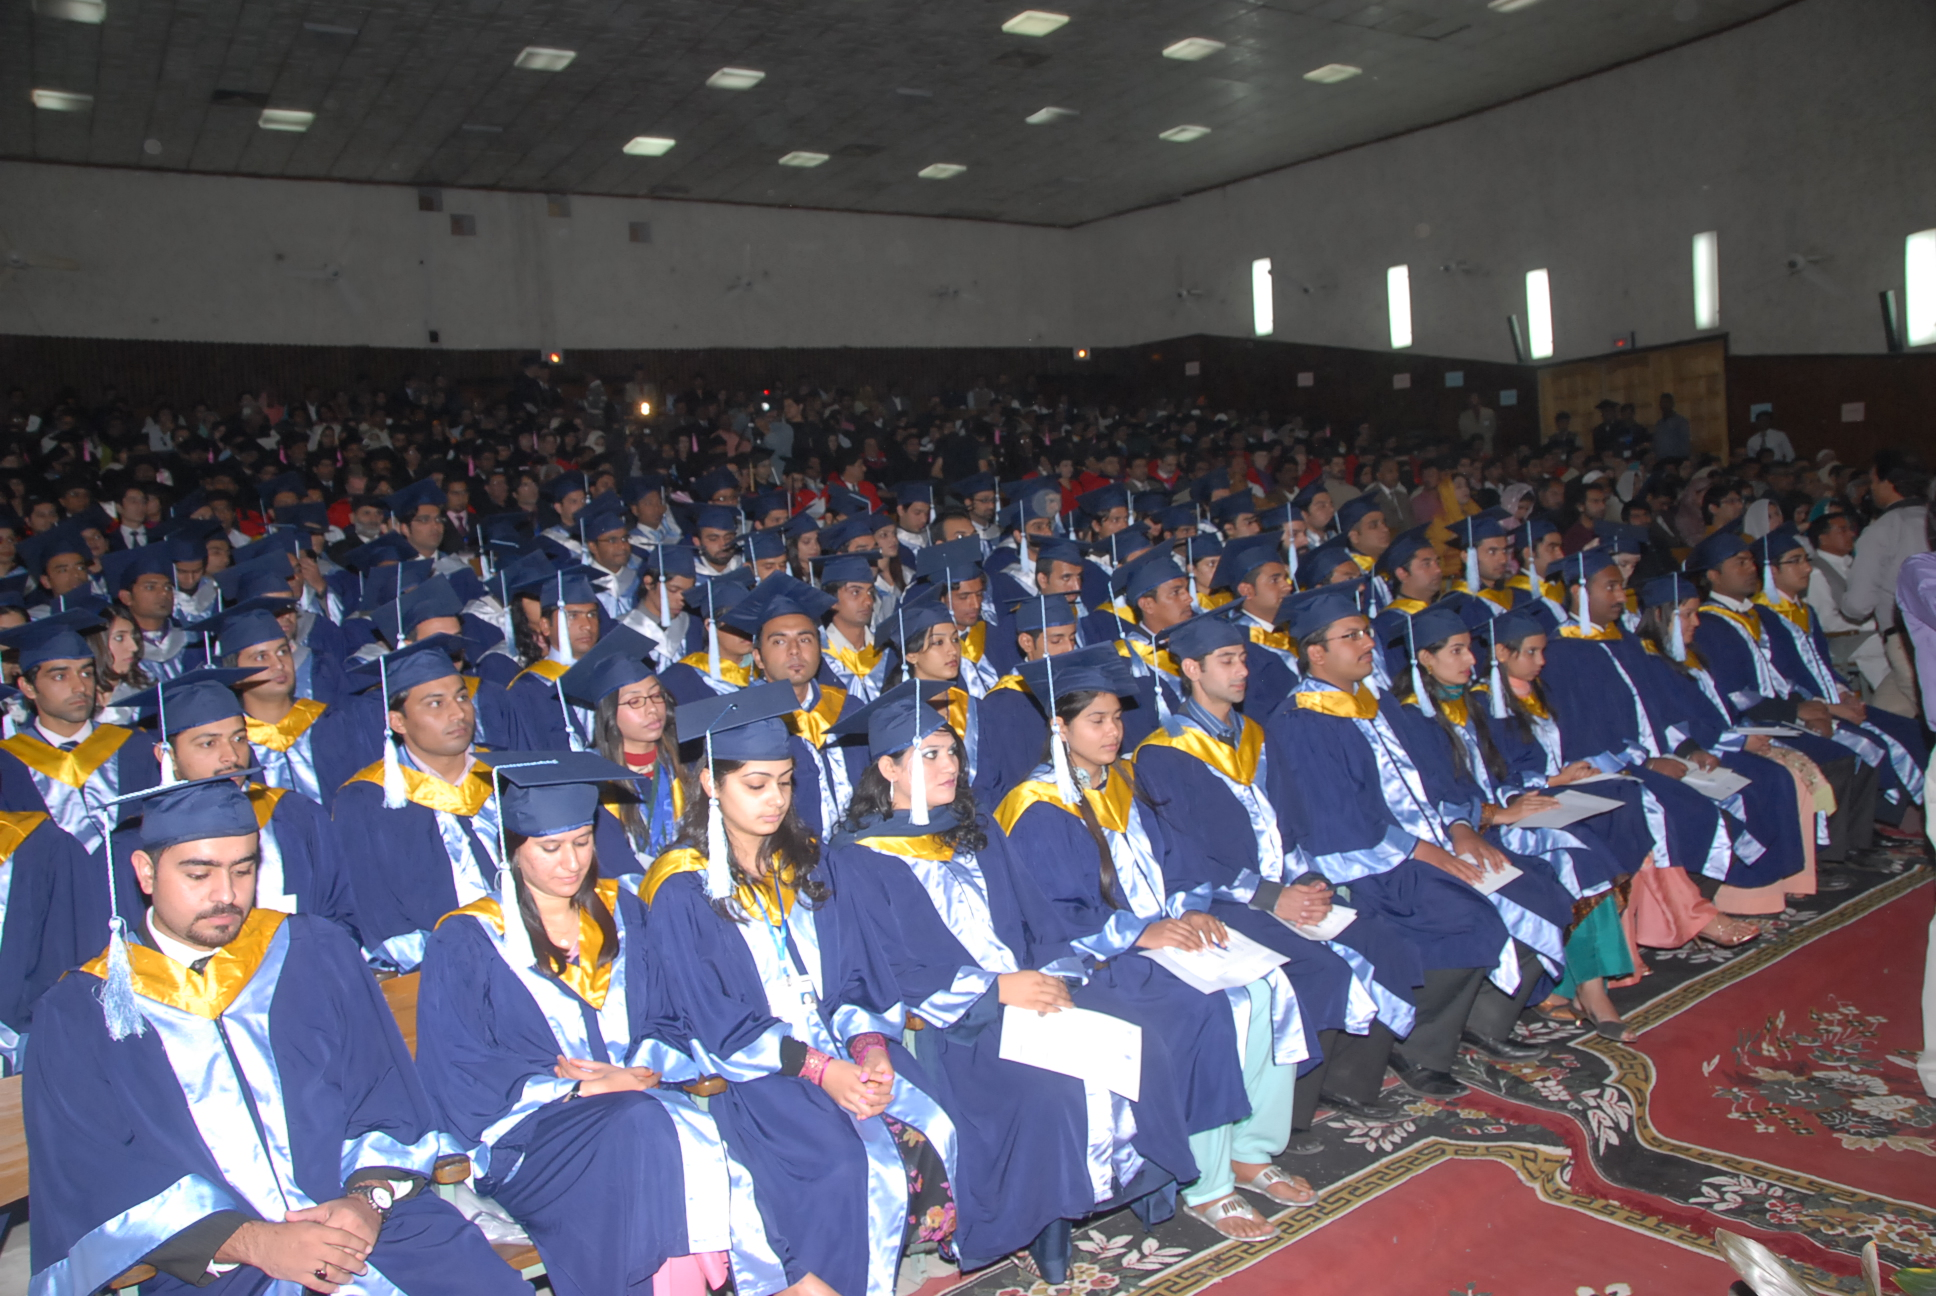 Convocation at FC College - a set on Flickr